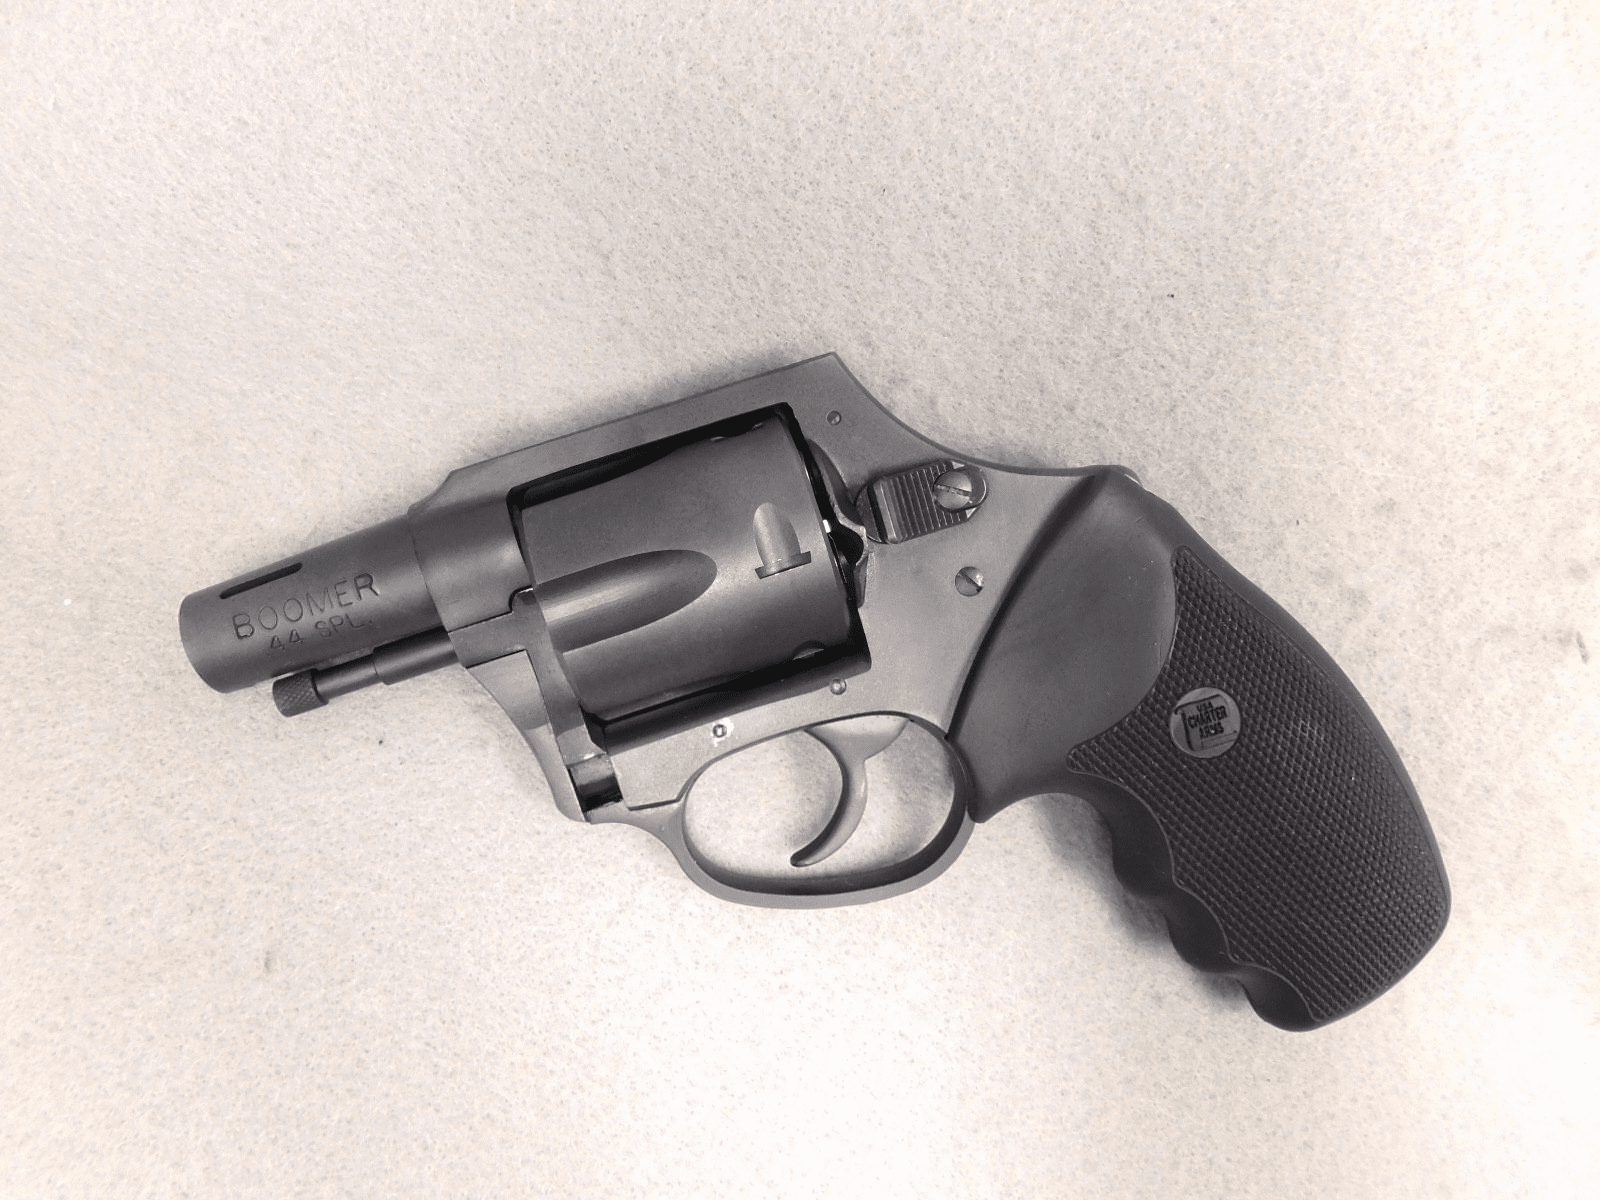 Charter Arms Boomer (.44 SPL)